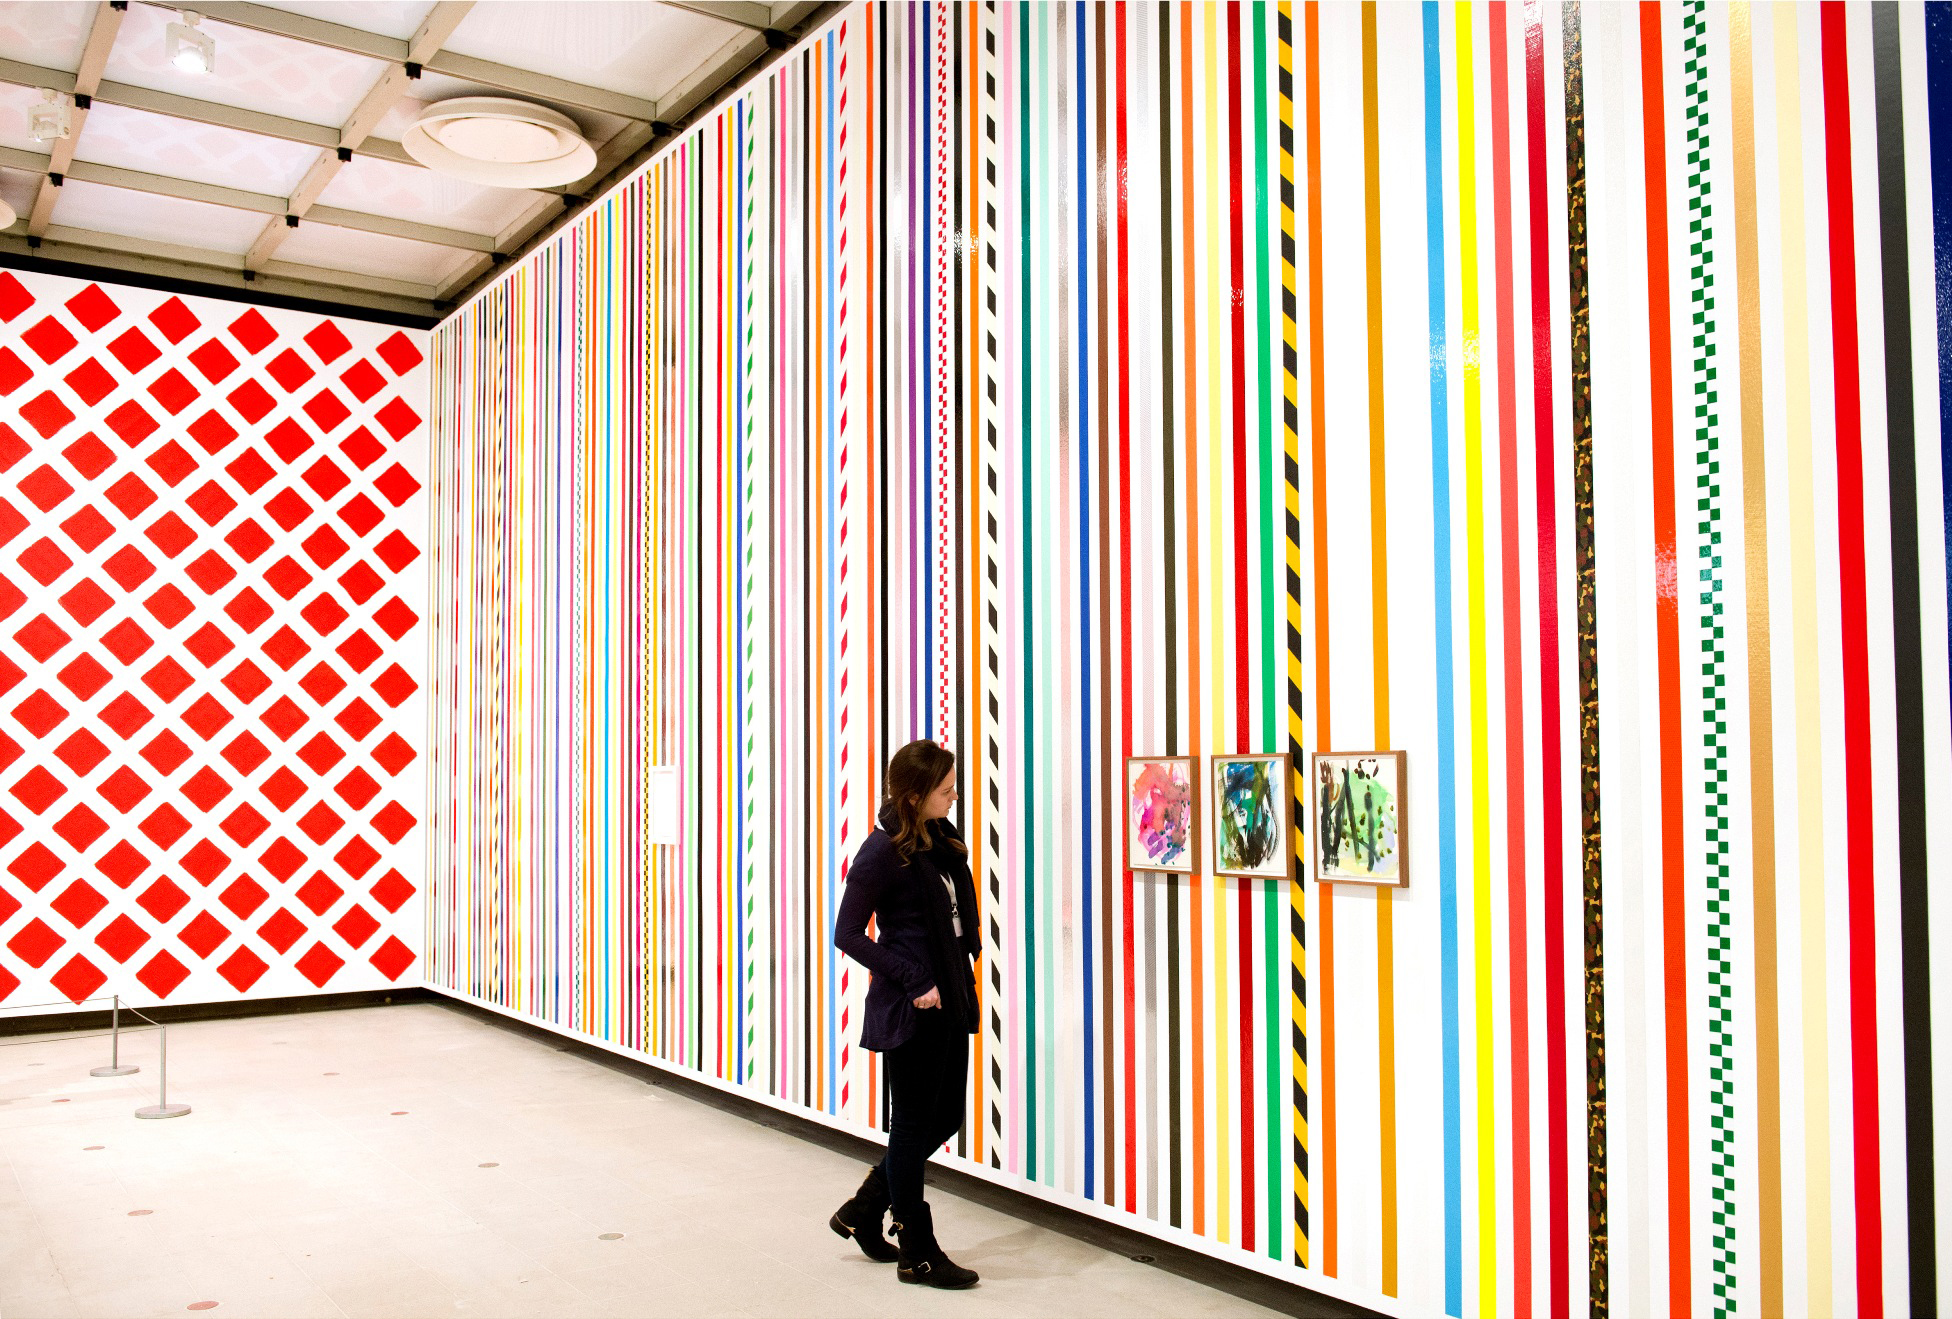 Martin Creed, Hayward Gallery, vue de l'exposition. Photo de Linda Nylind.